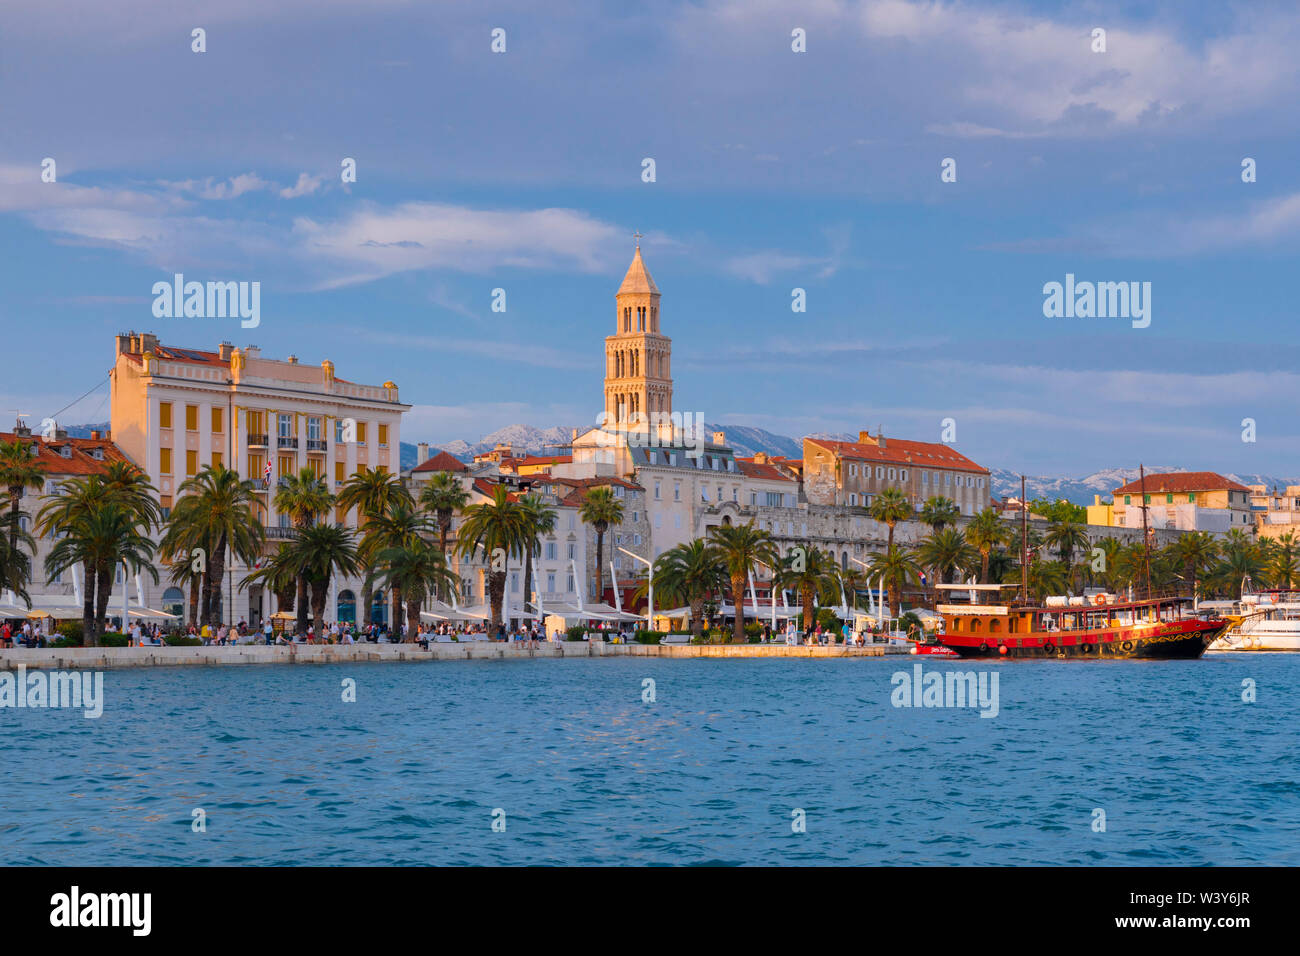 Split Harbour, Split, Dalmatian Coast, Croatia, Europe - Stock Image